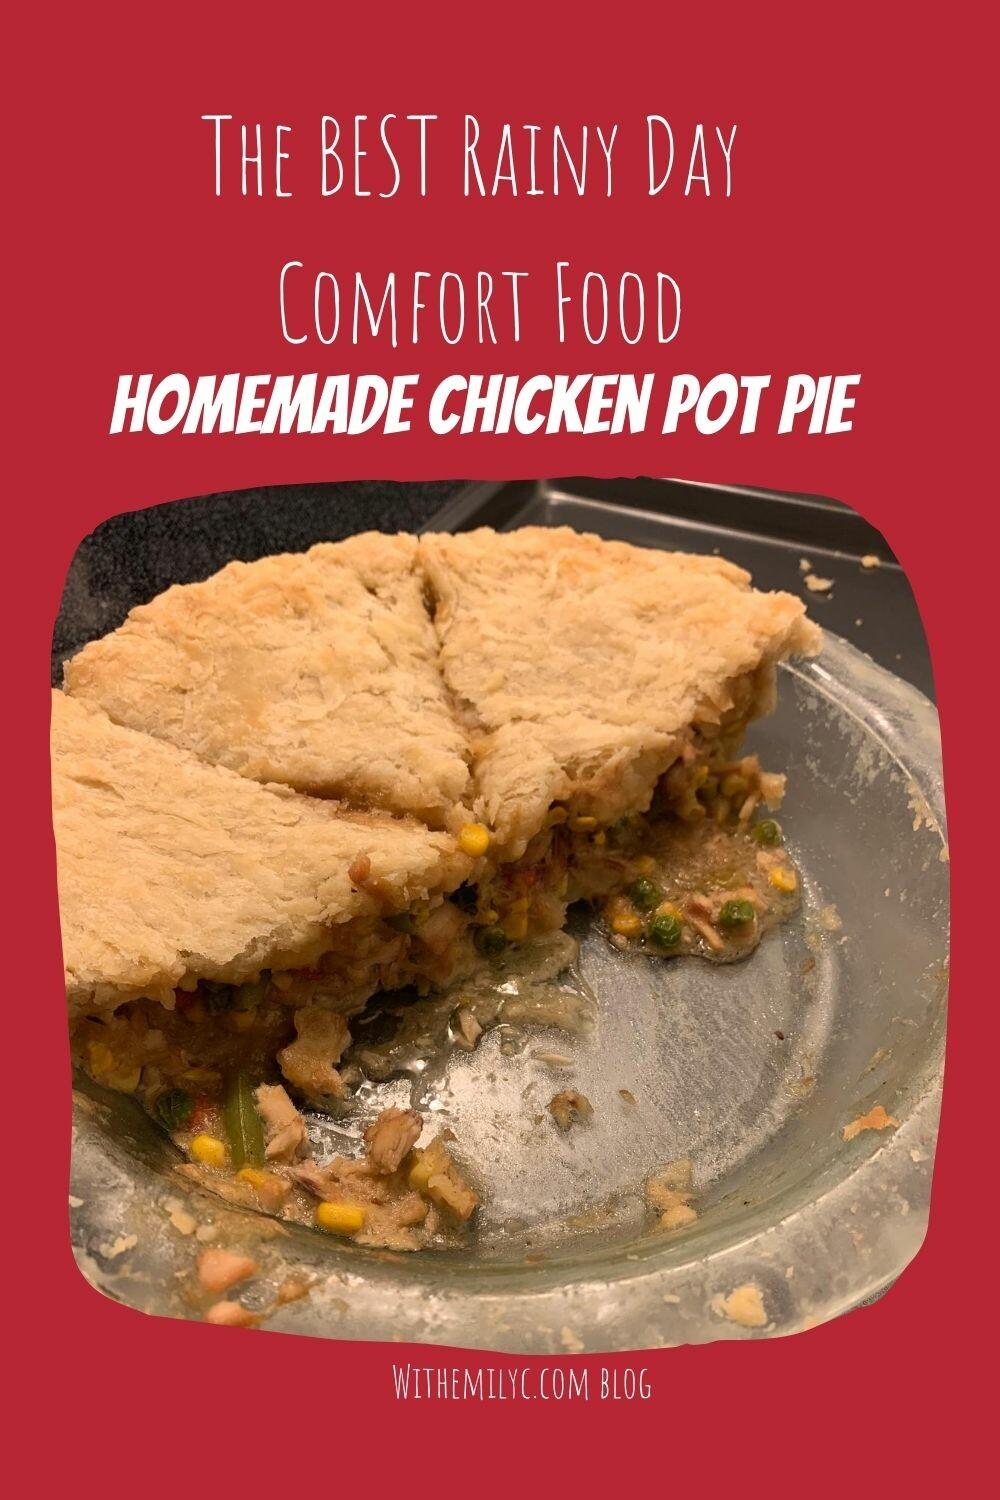 The BEST rainy day comfort food: Homemade Chicken Pot Pie